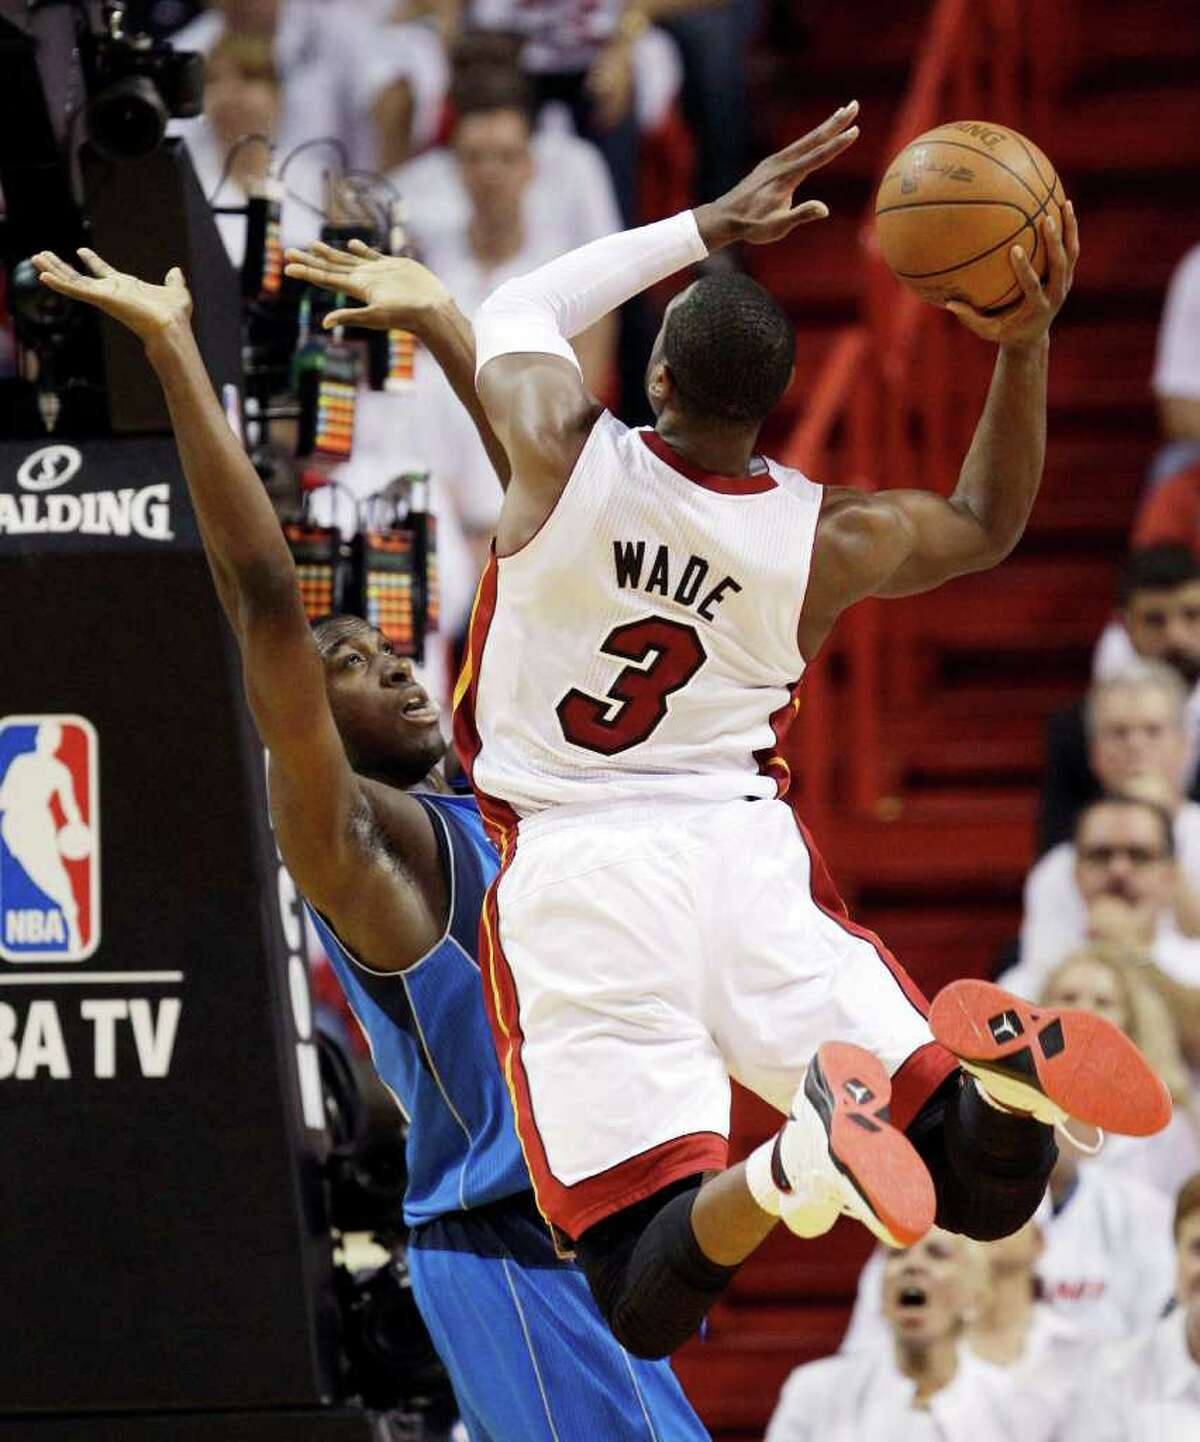 Miami Heat's Dwyane Wade (3) shoots with Dallas Mavericks' Ian Mahinmi defending during the first half of Game 6 of the NBA Finals basketball game Sunday, June 12, 2011, in Miami.